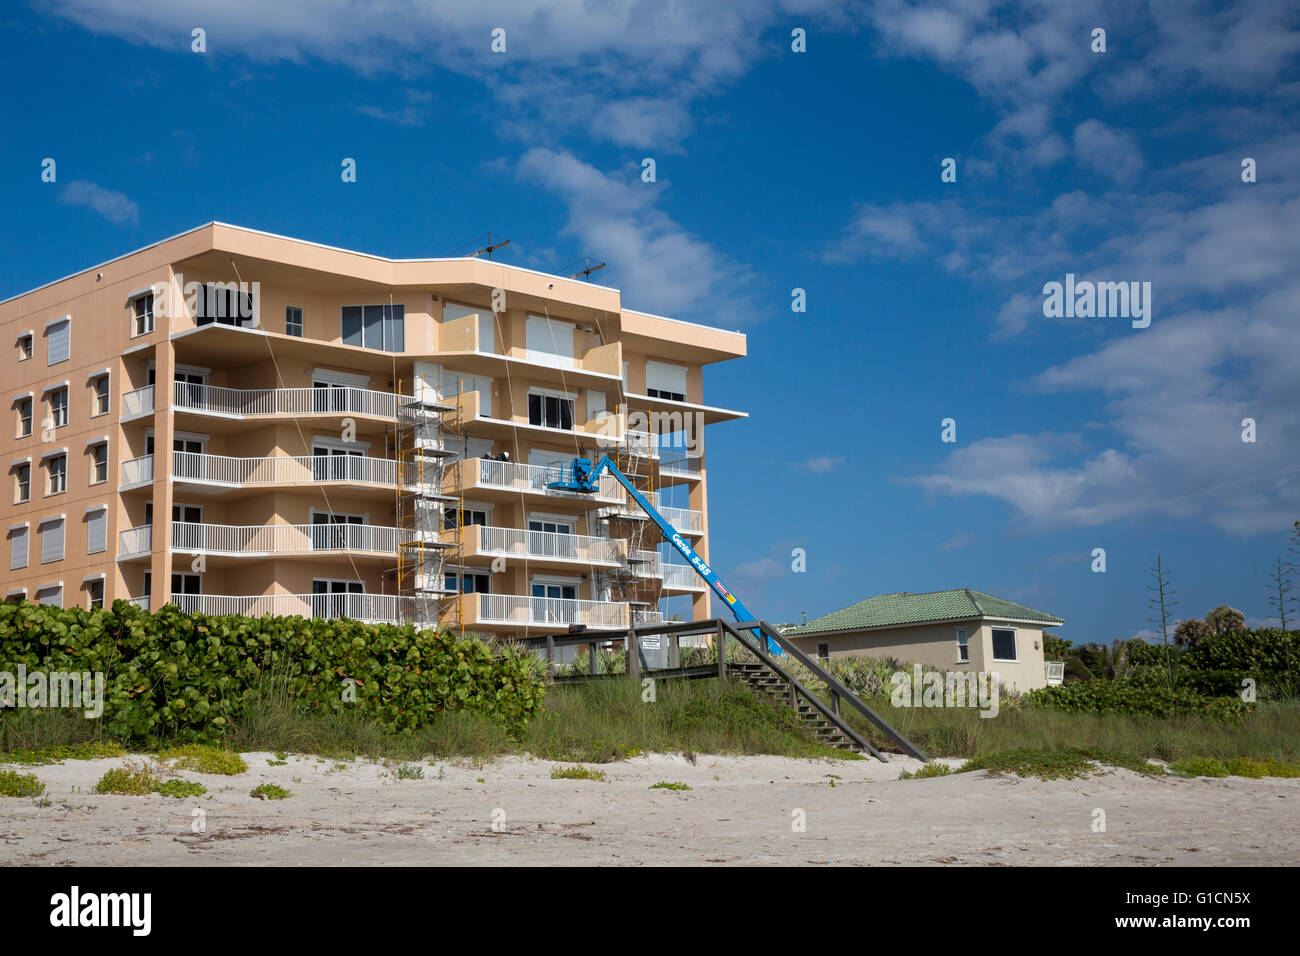 Indialantic, Florida - A condominium building under construction on a Florida barrier island. - Stock Image